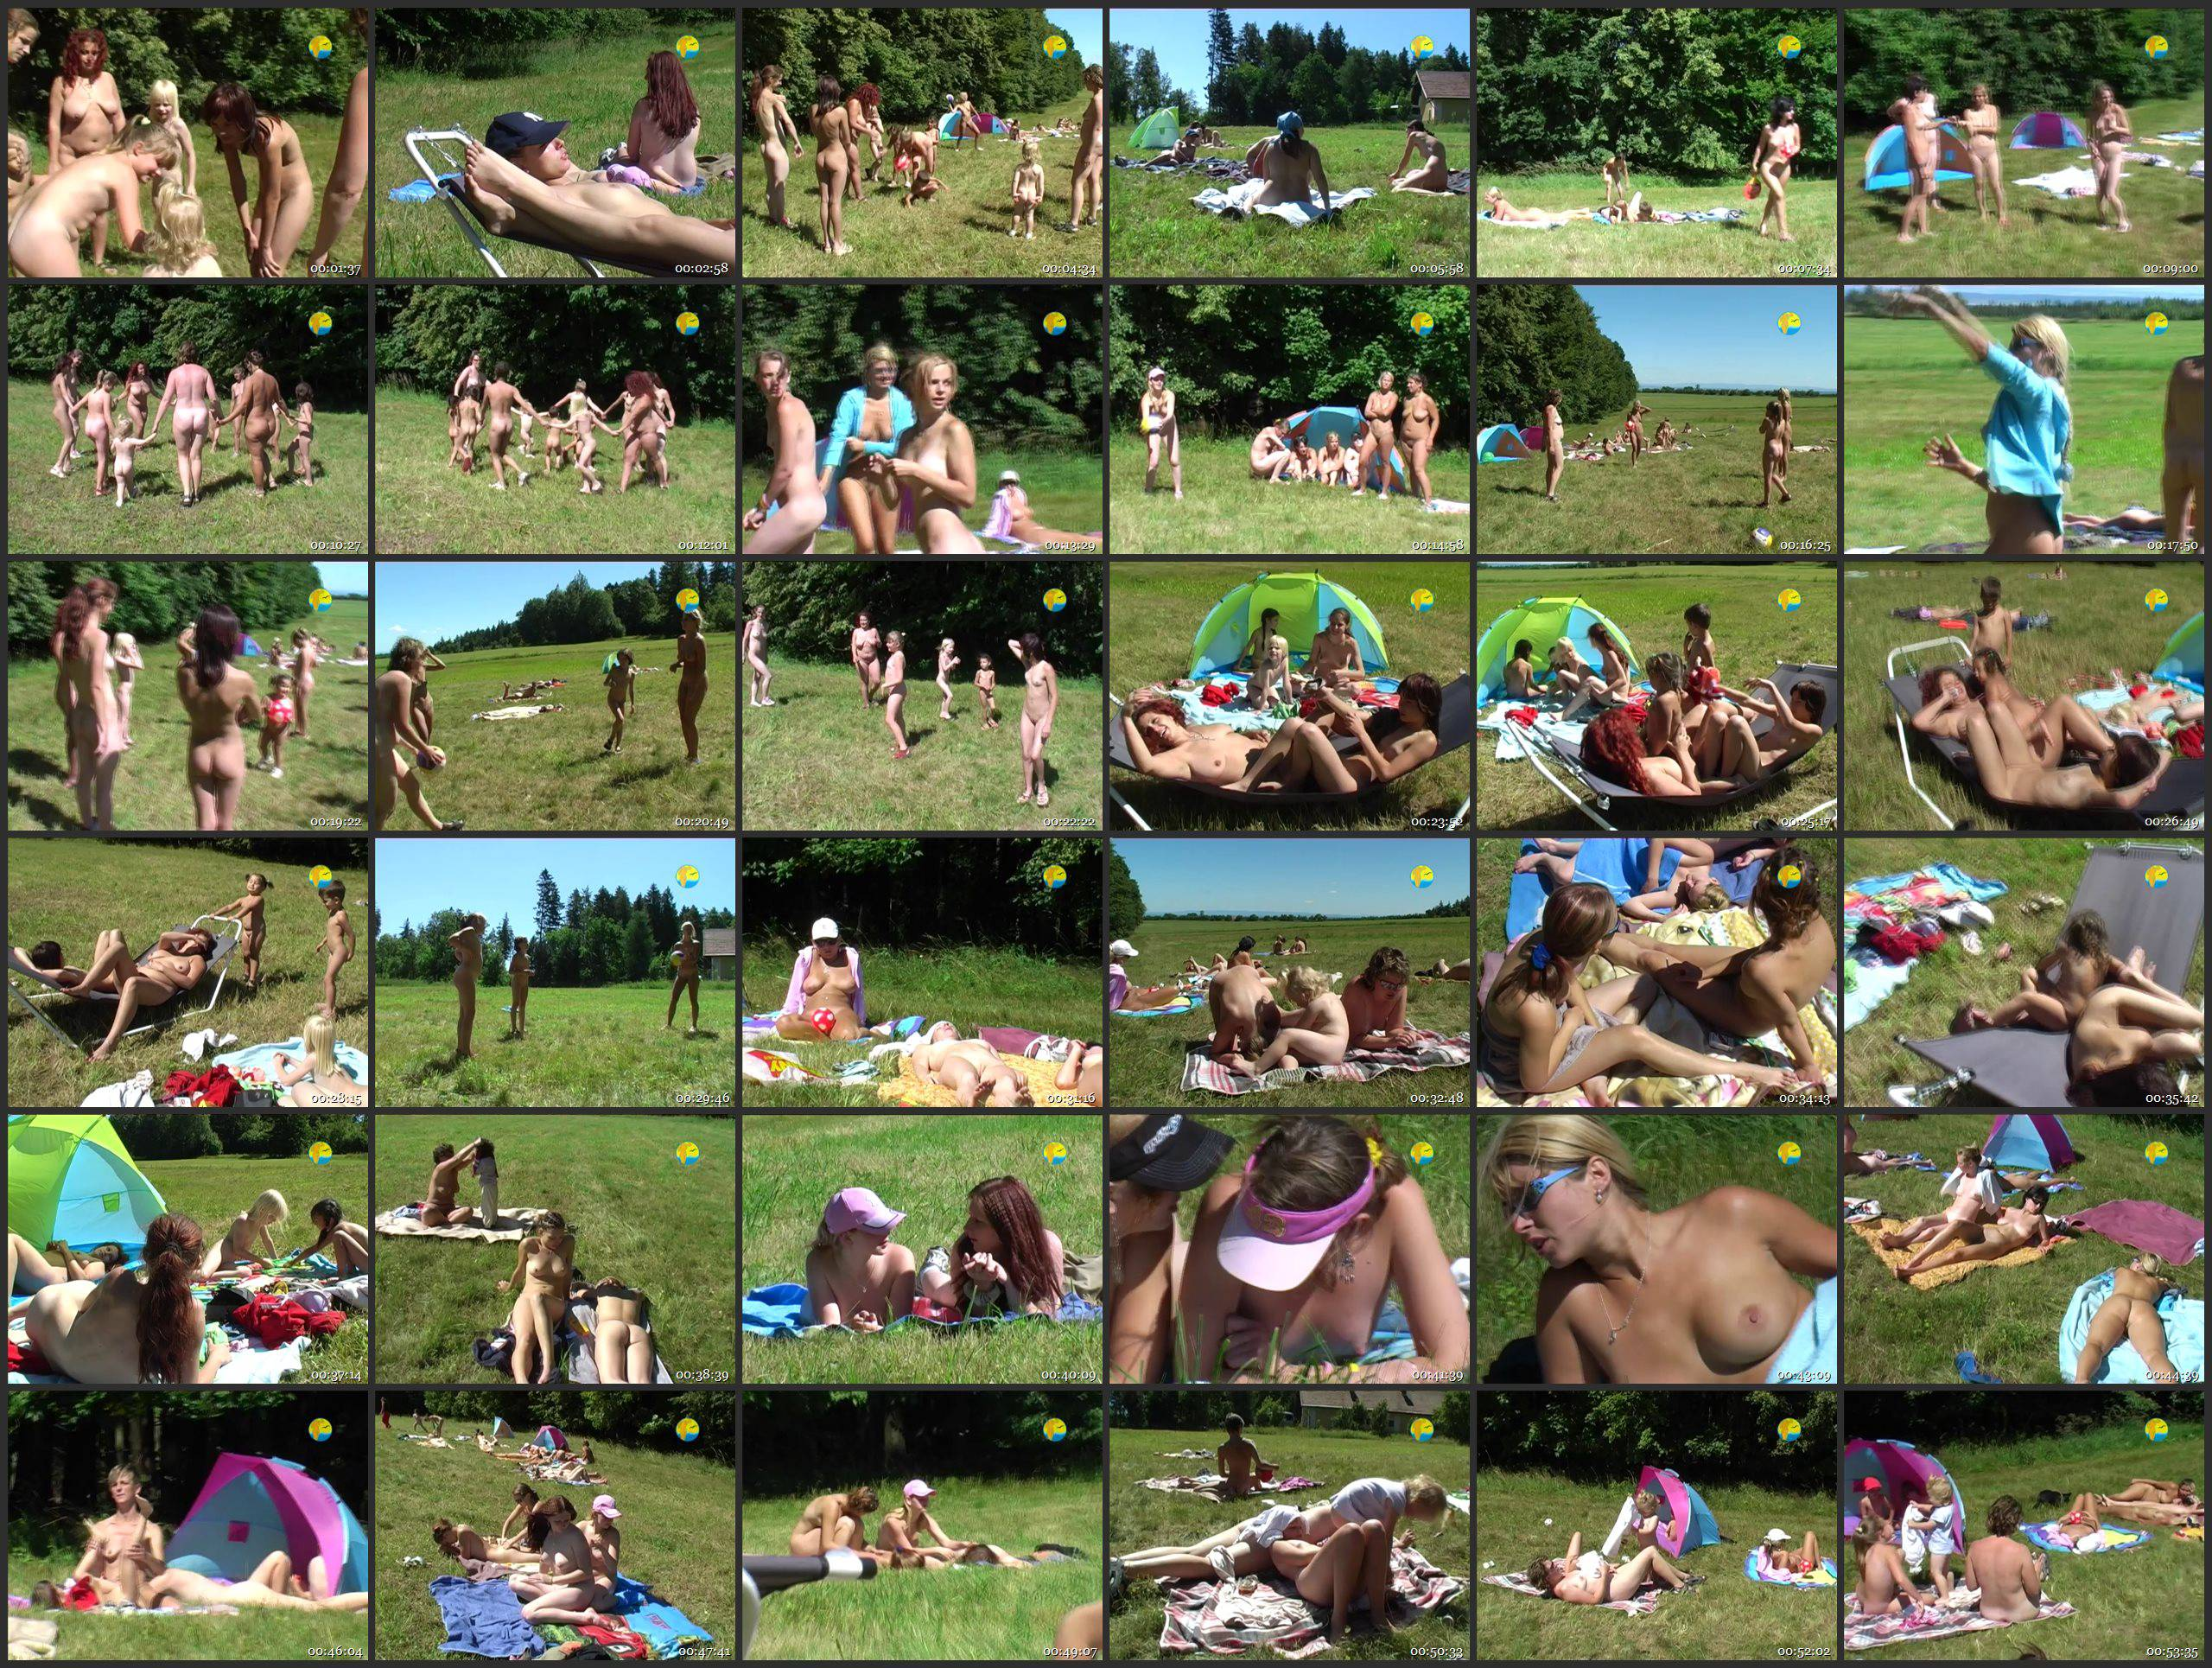 Naturist Freedom Videos On a Meadow by the Forest - Thumbnails